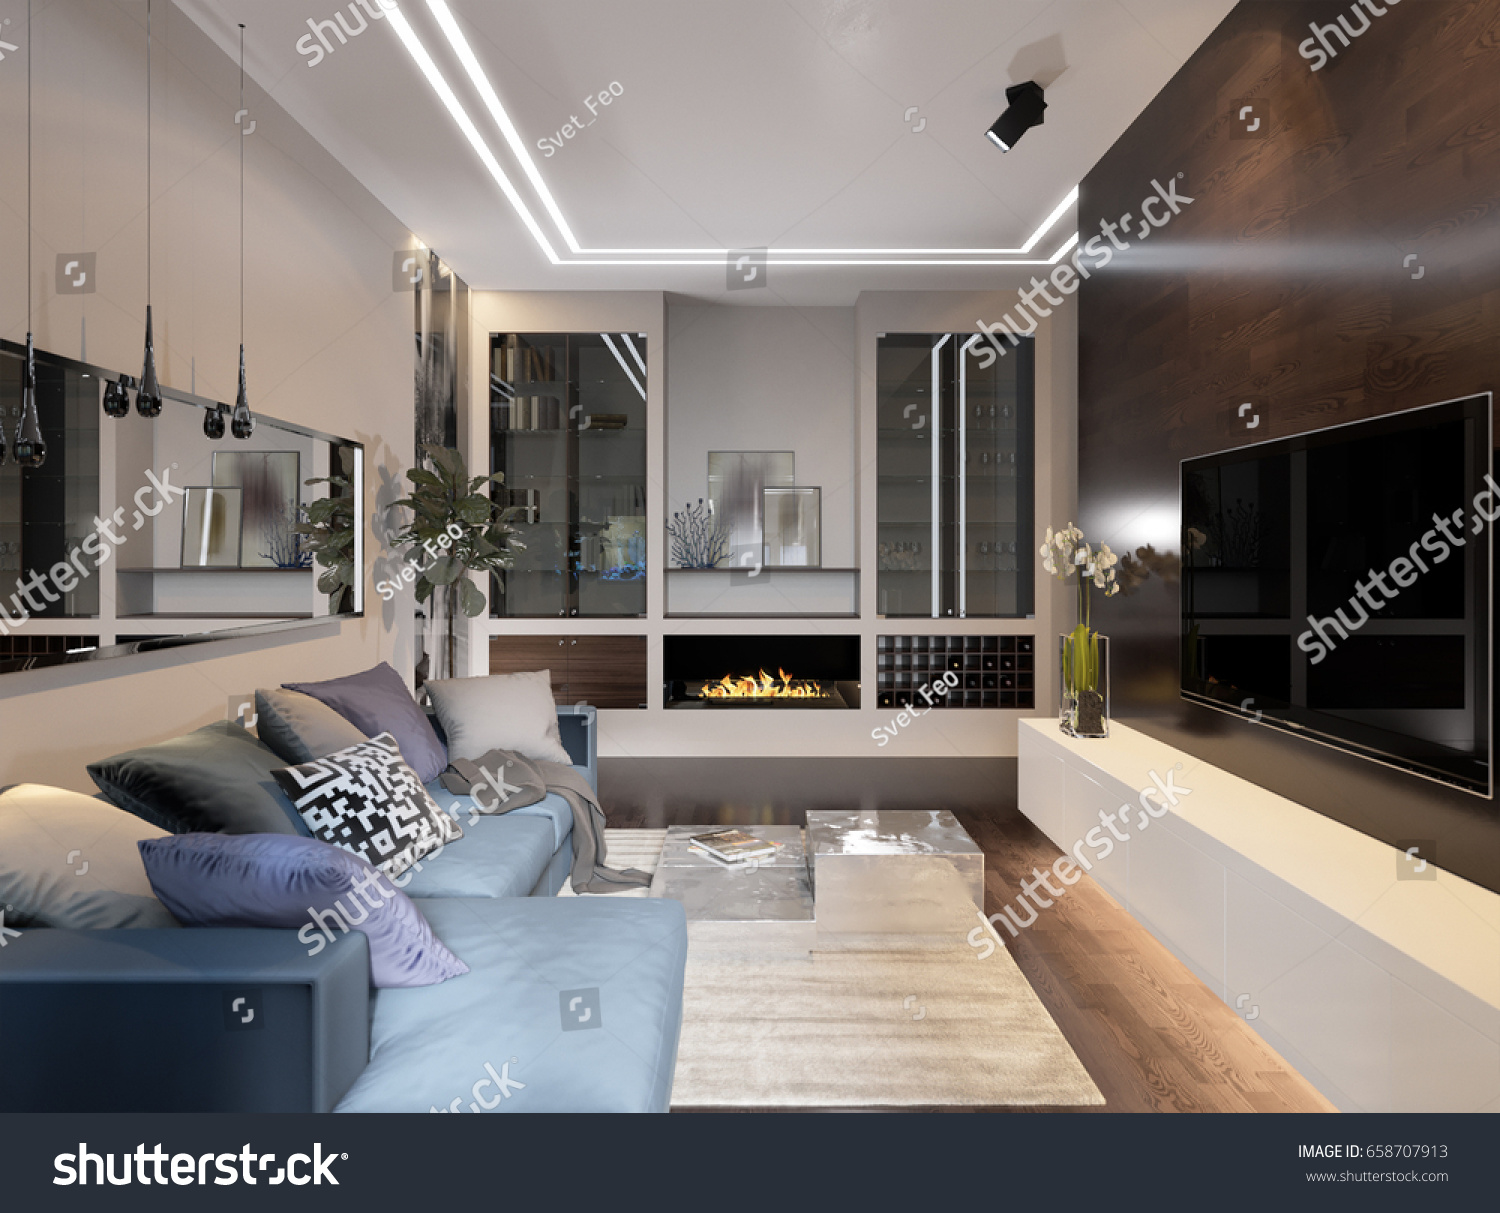 Urban Living Room Lighting Modern Contemporary Hotel Stock Illustration